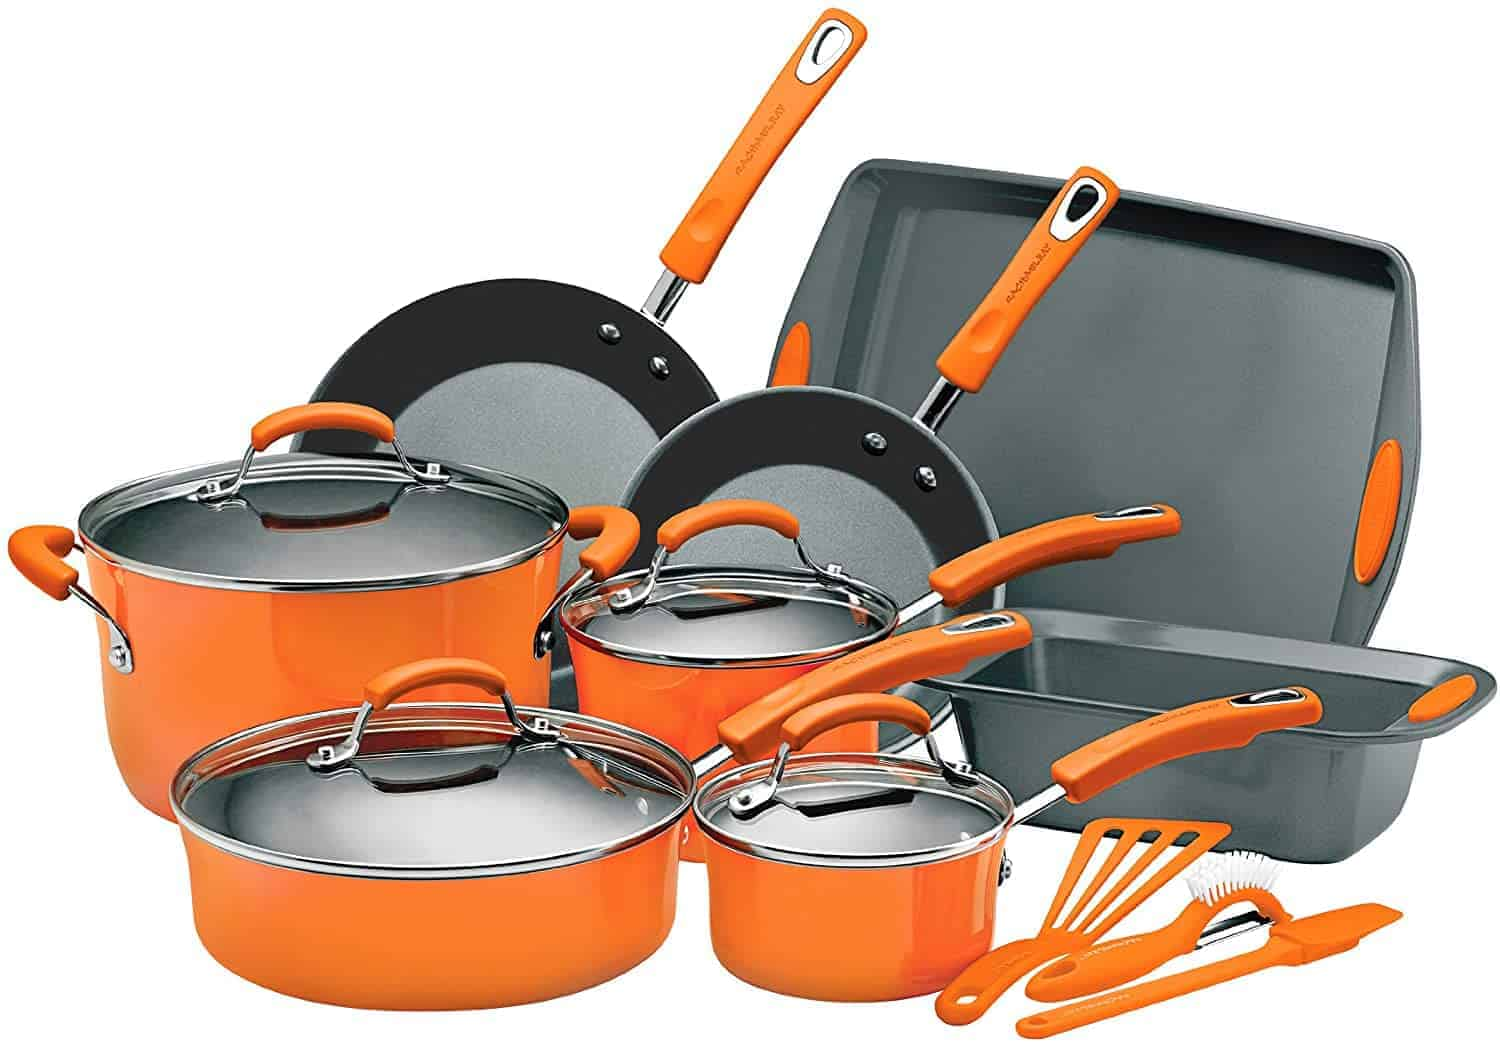 Best Enamel Cookware Set: Rachael Ray Porcelain Enamel 15-Piece Set